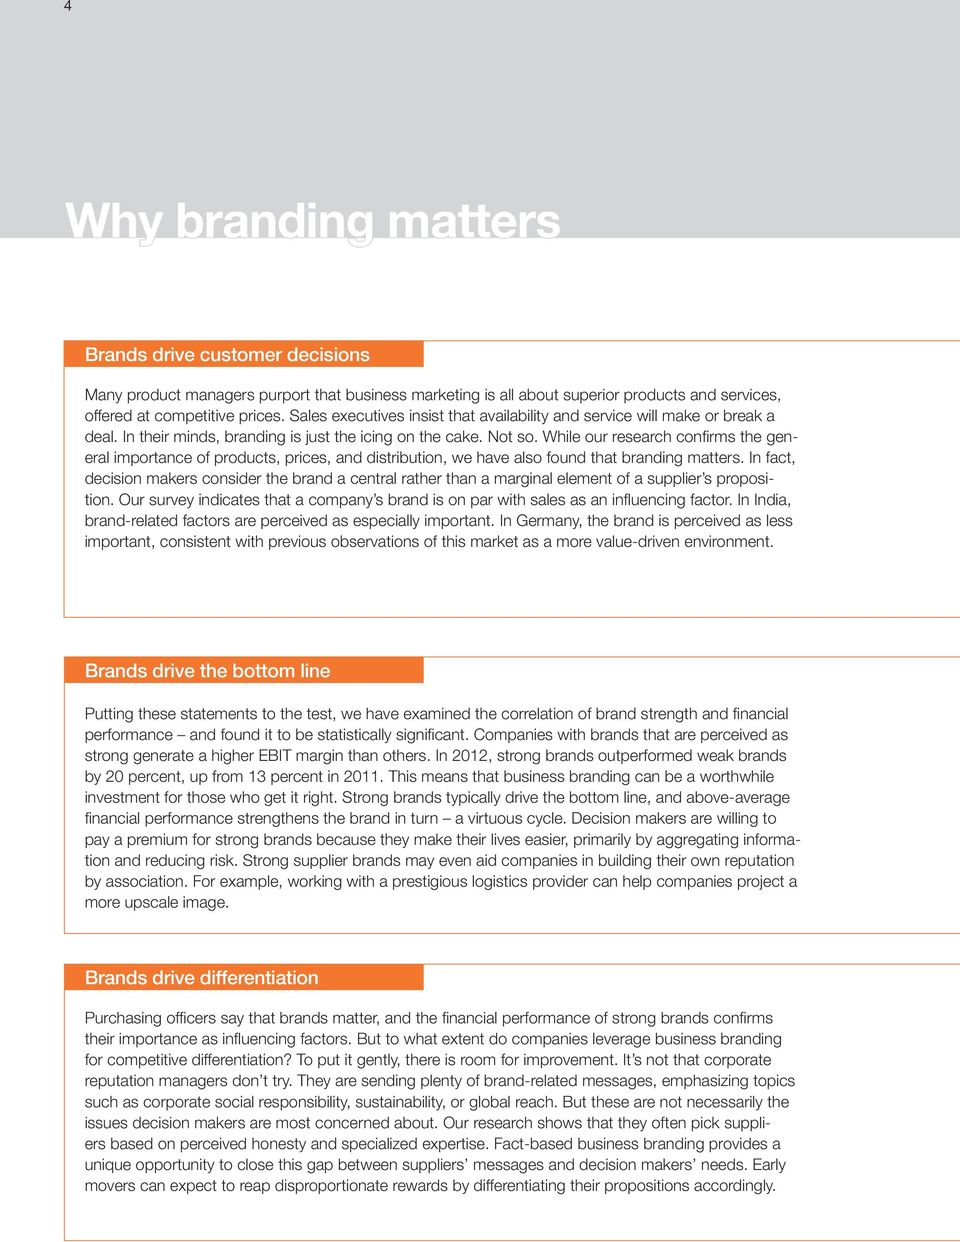 While our research confirms the general importance of products, prices, and distribution, we have also found that branding matters.